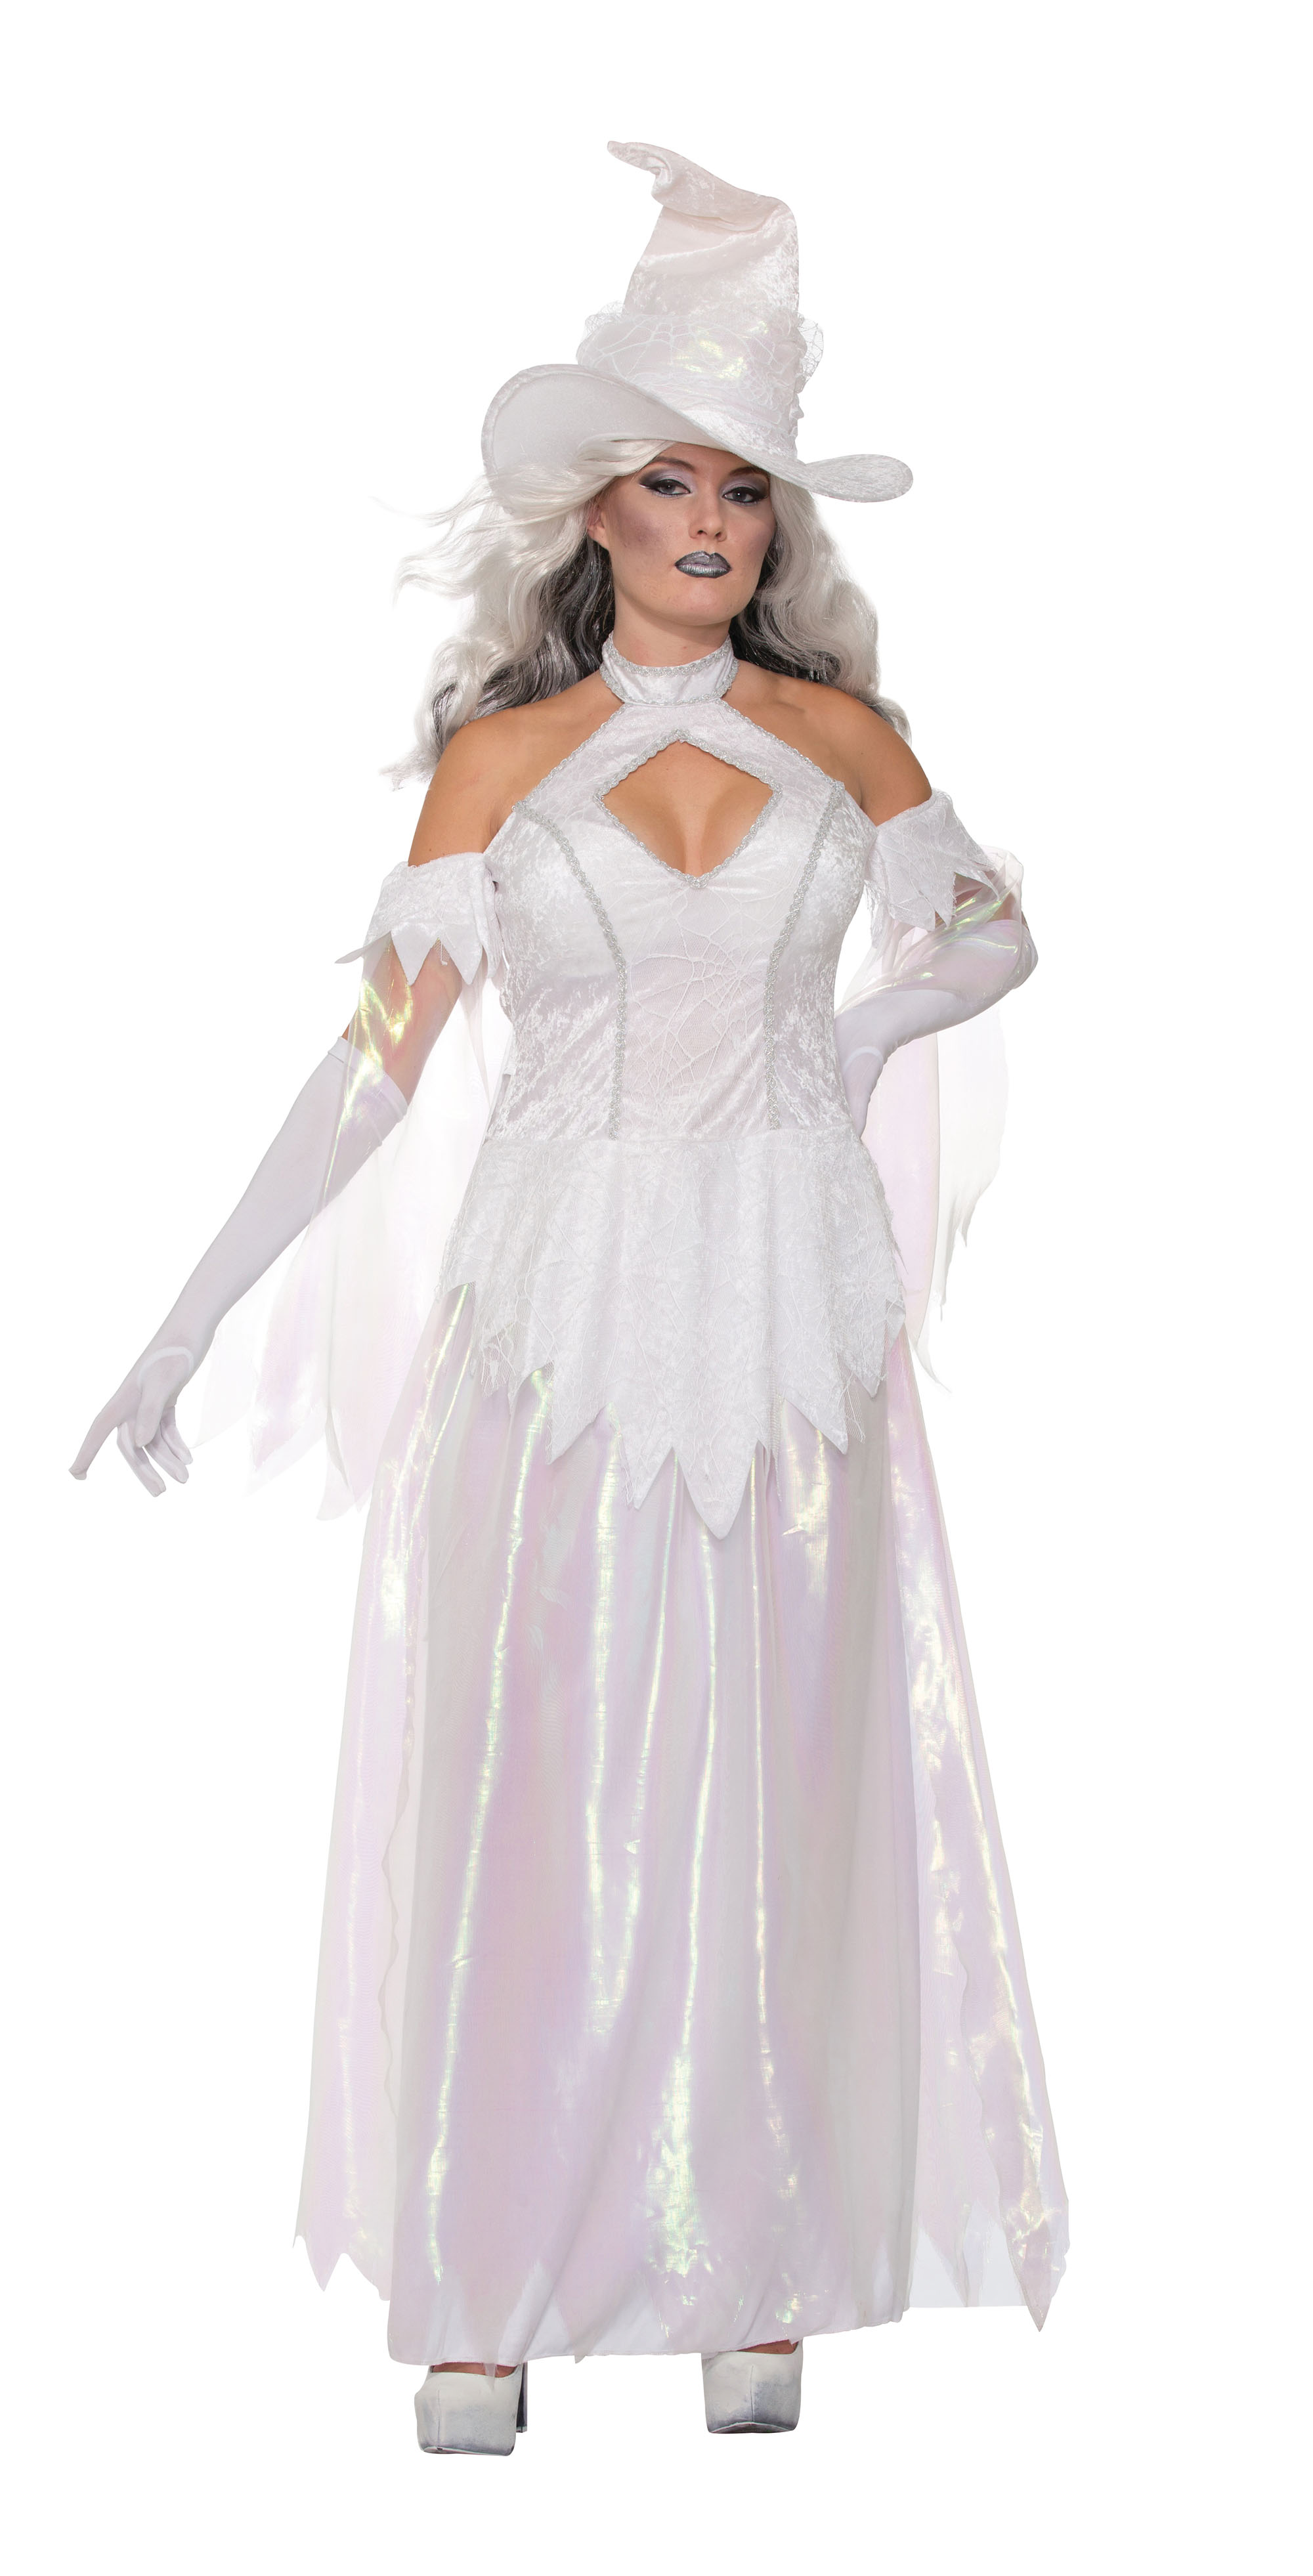 Crystal Magick Costume Halloween Fancy Dress Costume Outfit Womens UK 10-14